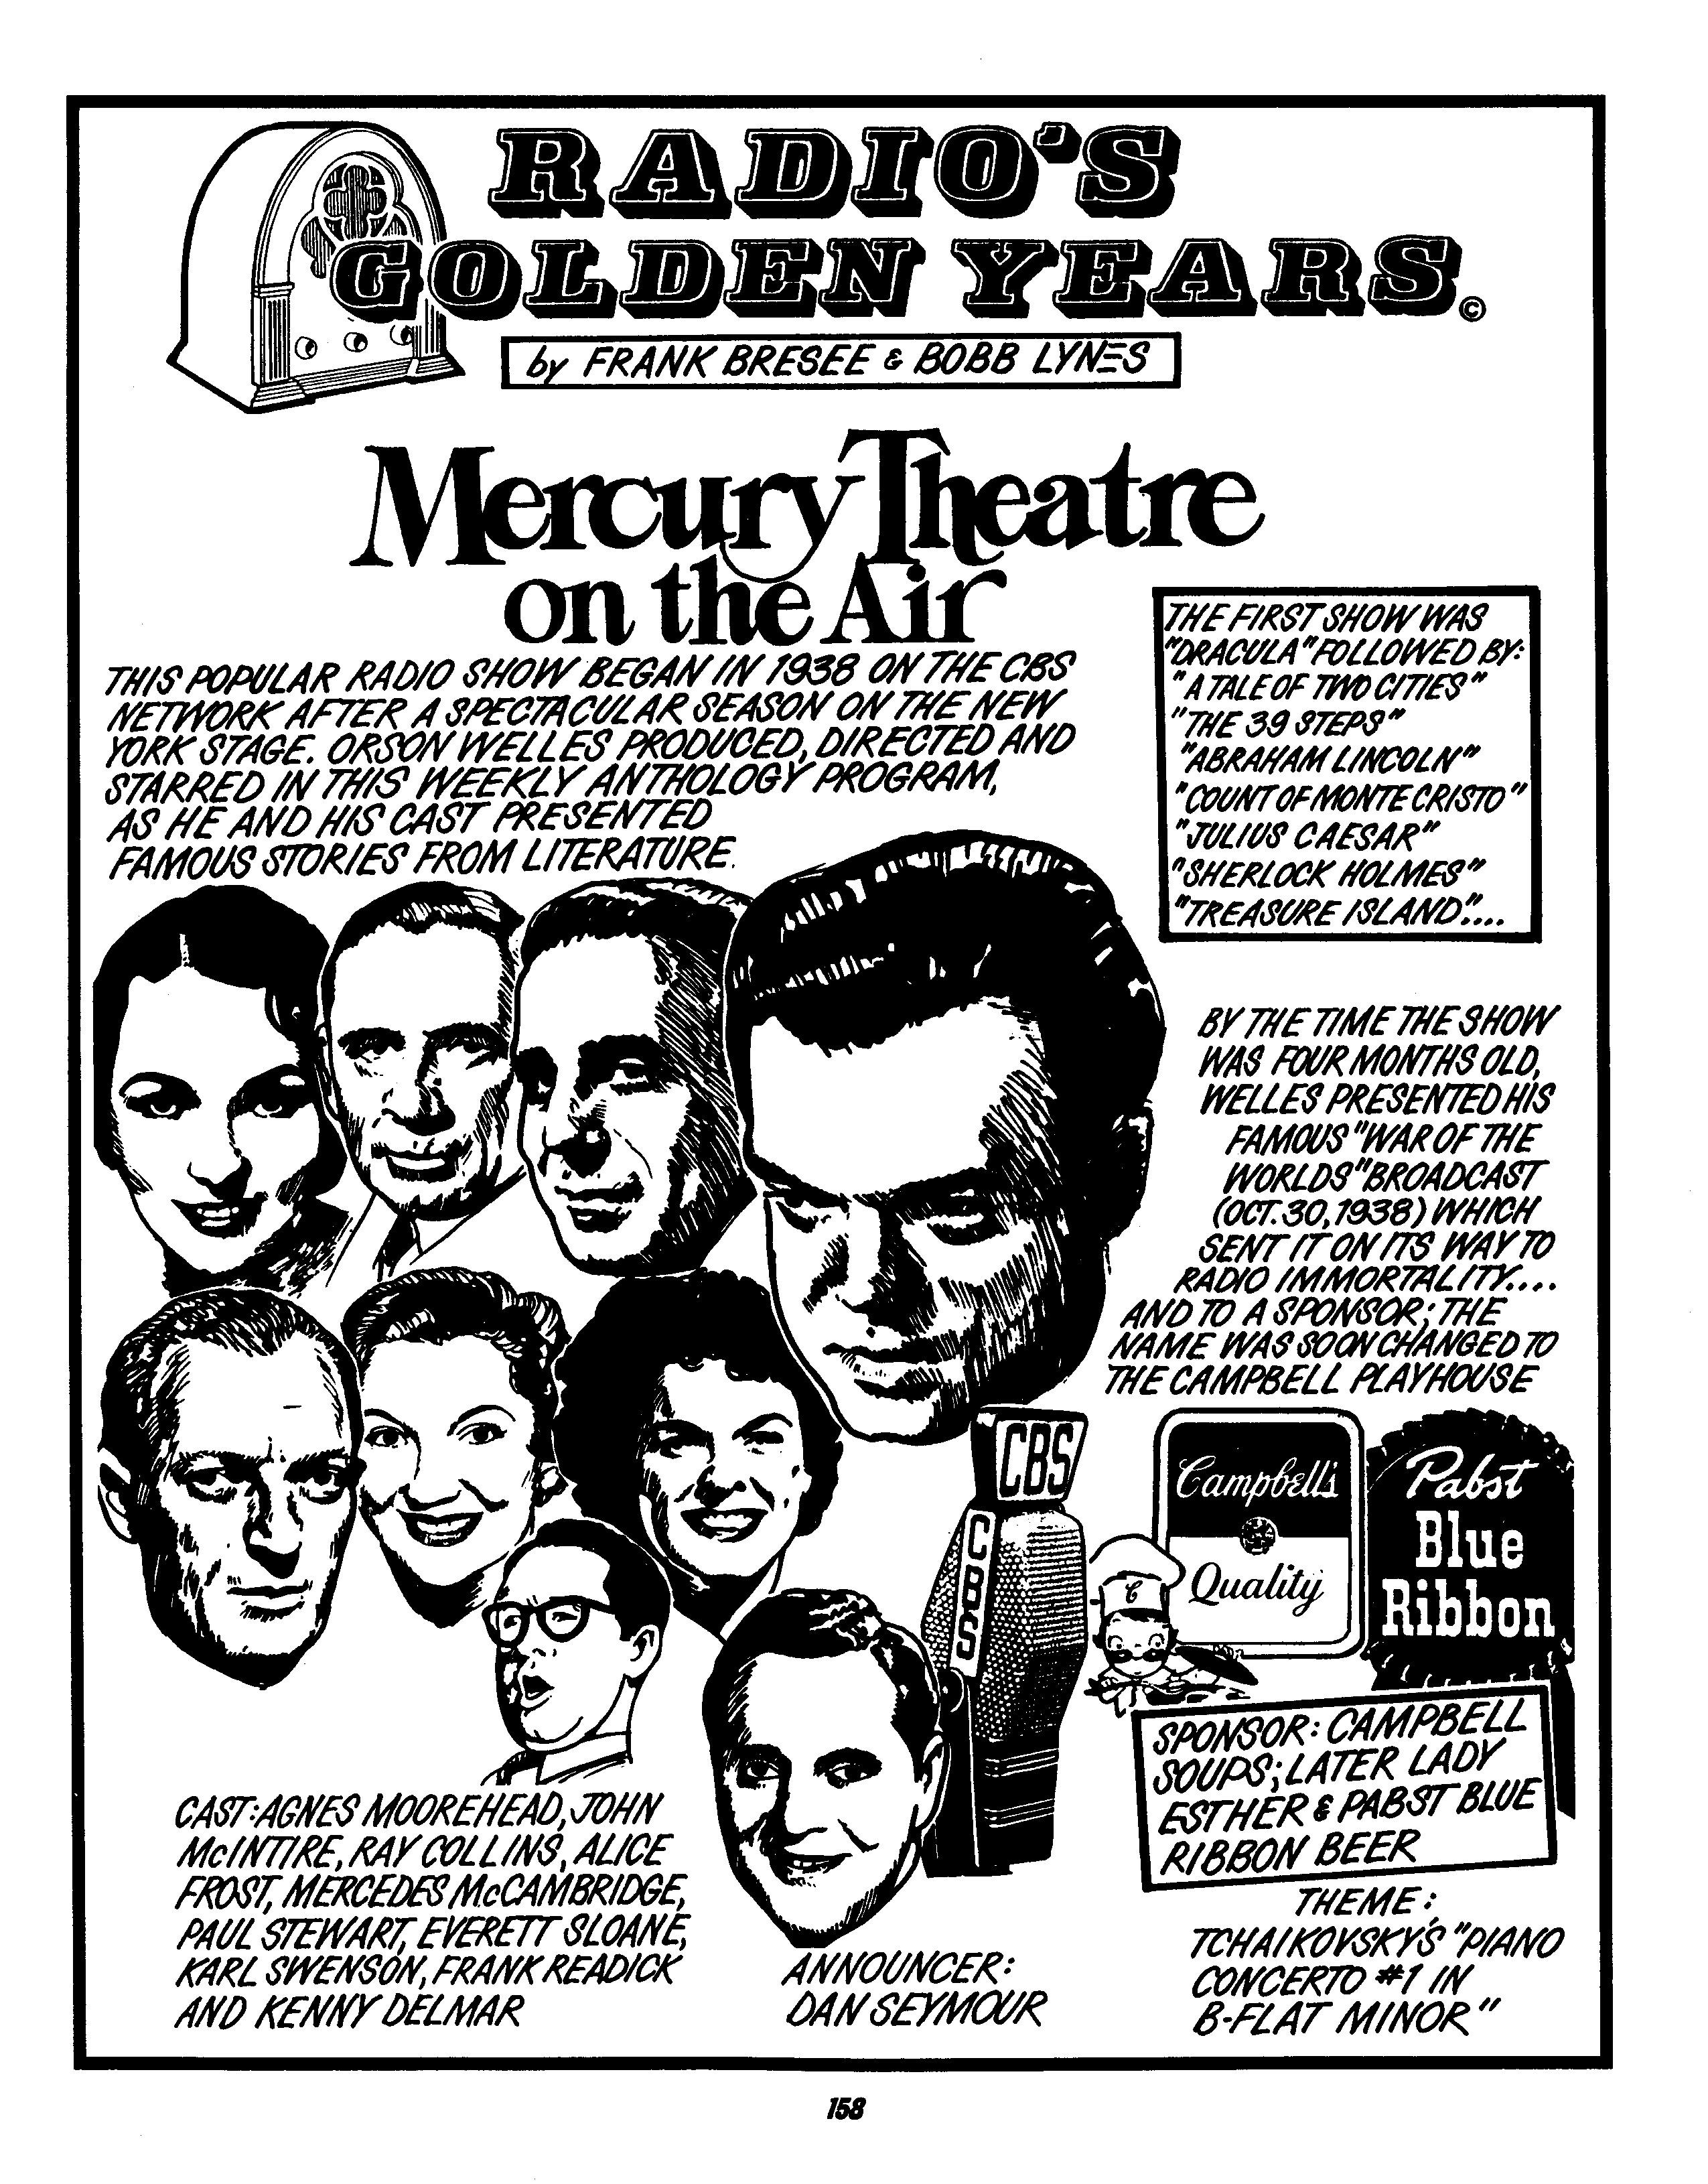 Mercury Theatre on the Air: Radio's Golden Years (1998) by Bobb Bresee and Frank Lynes